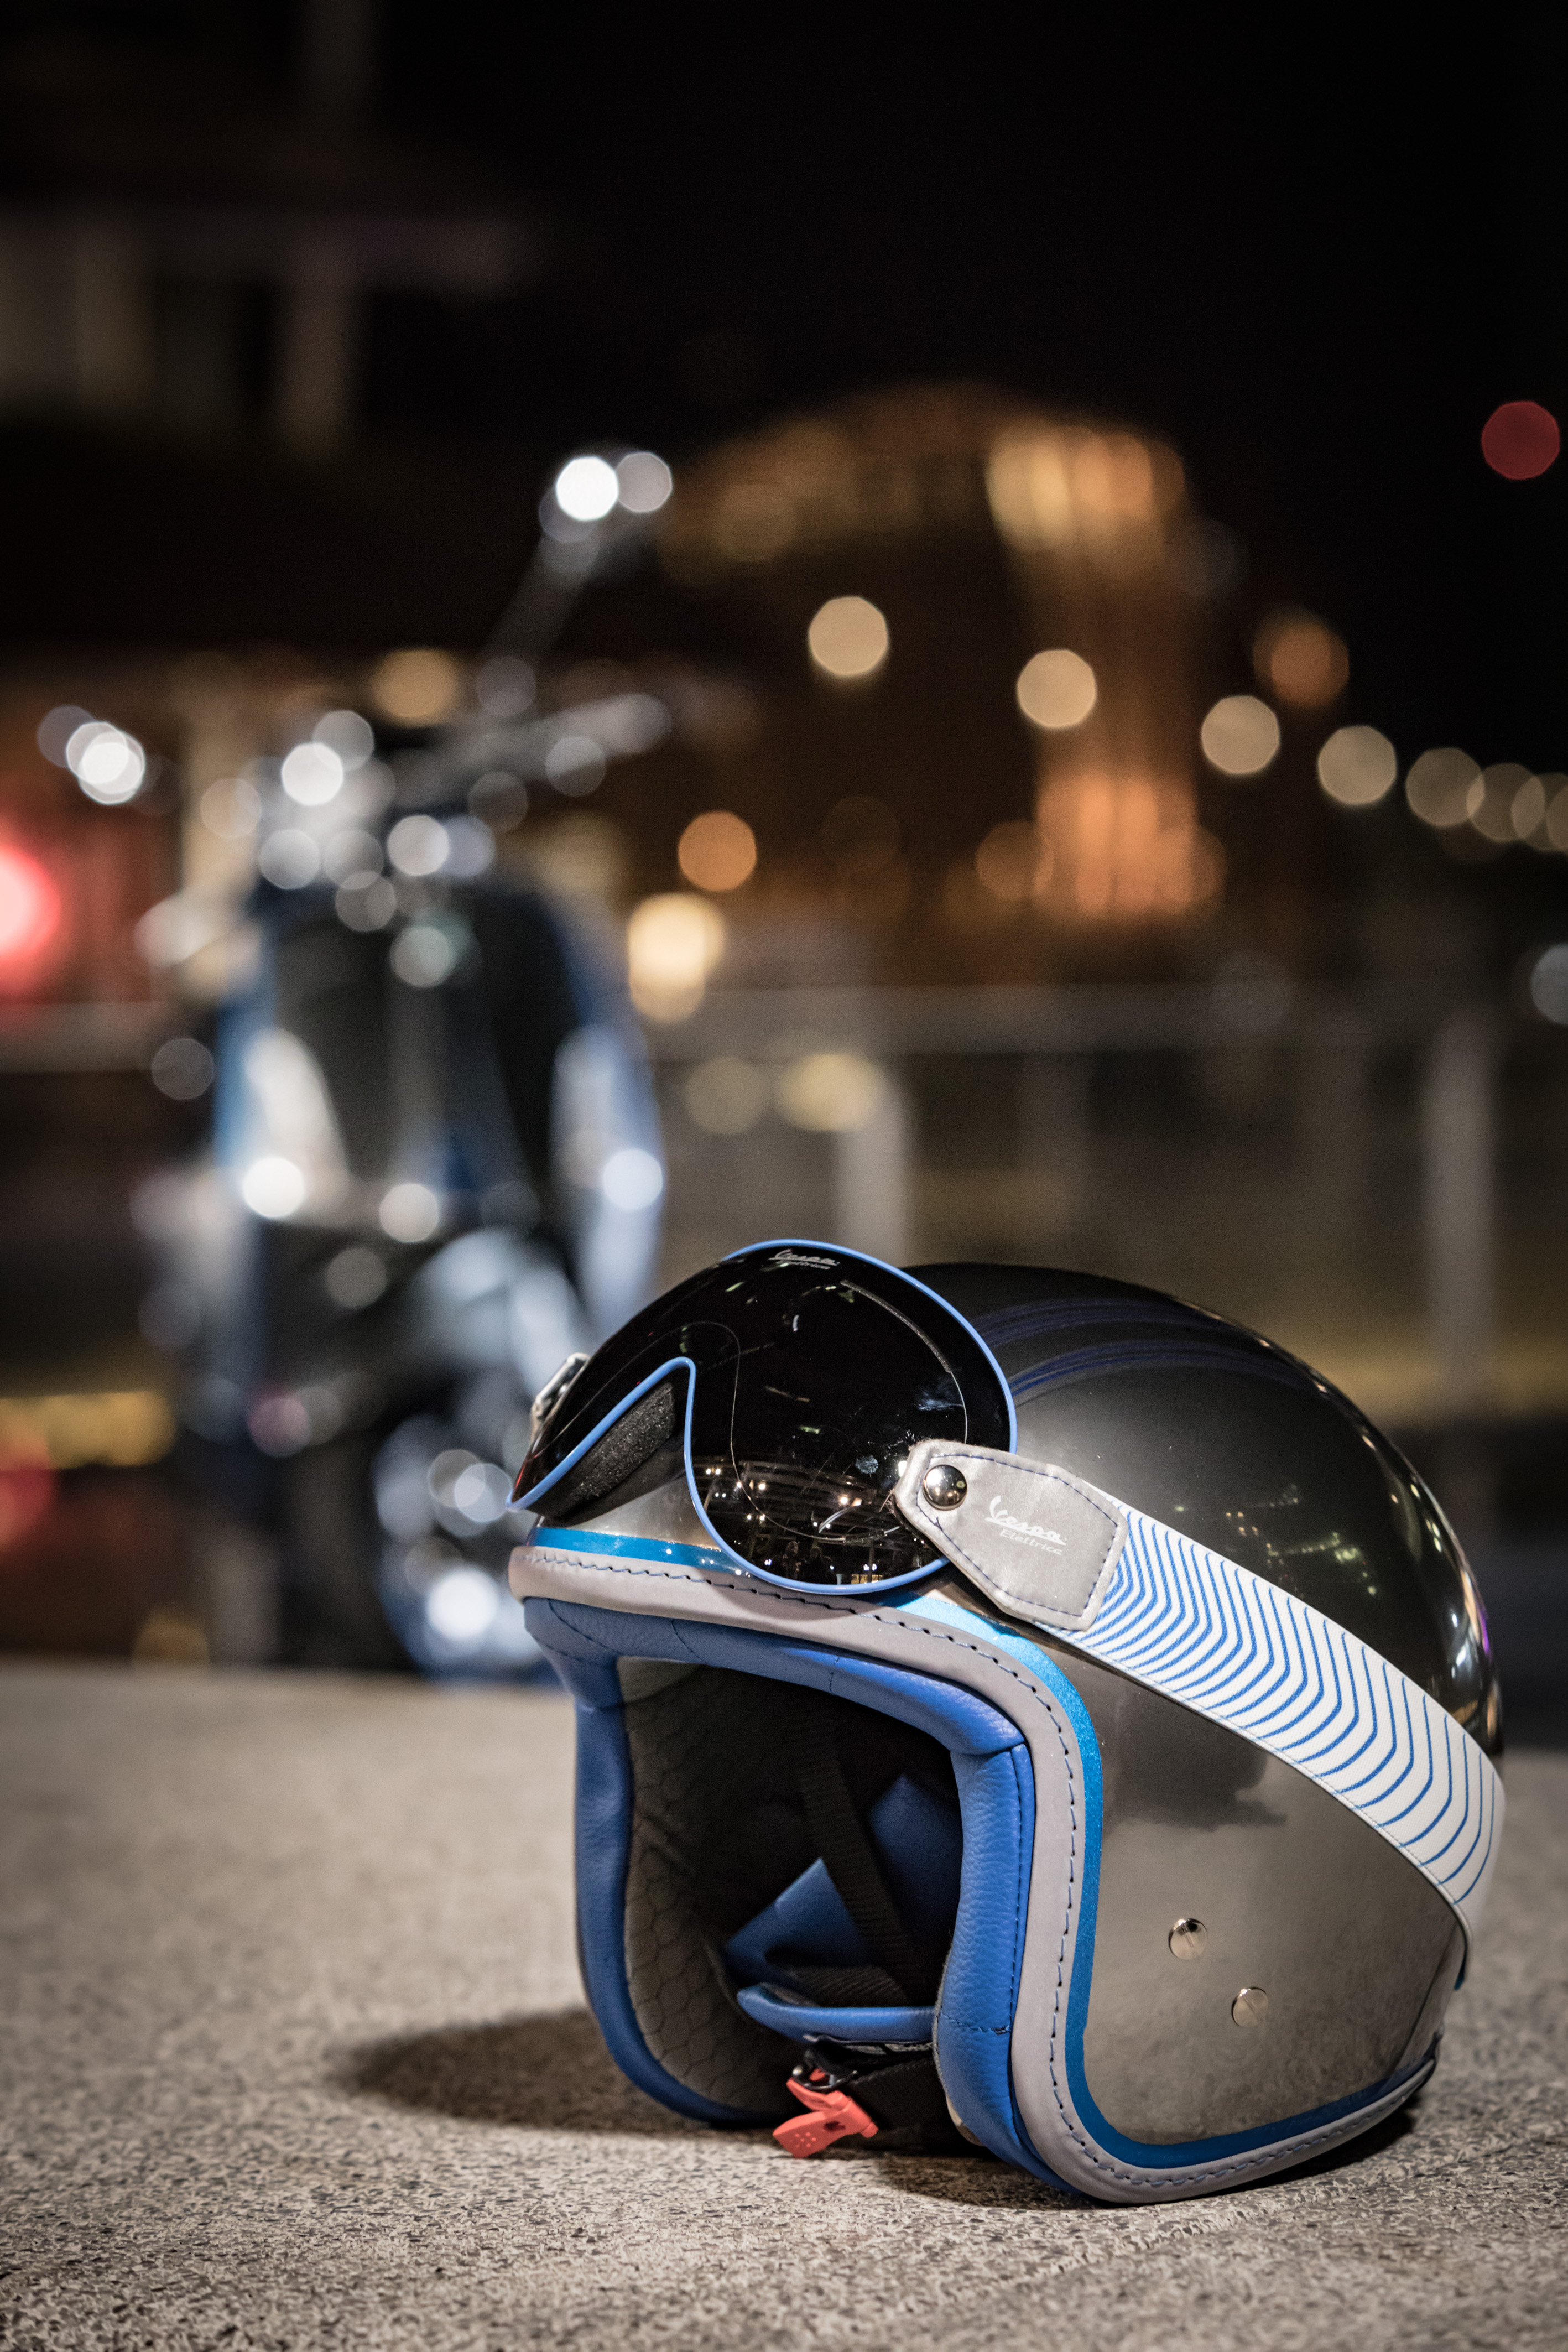 Vespa S First Electric Scooter Is Coming In 2018 With 62